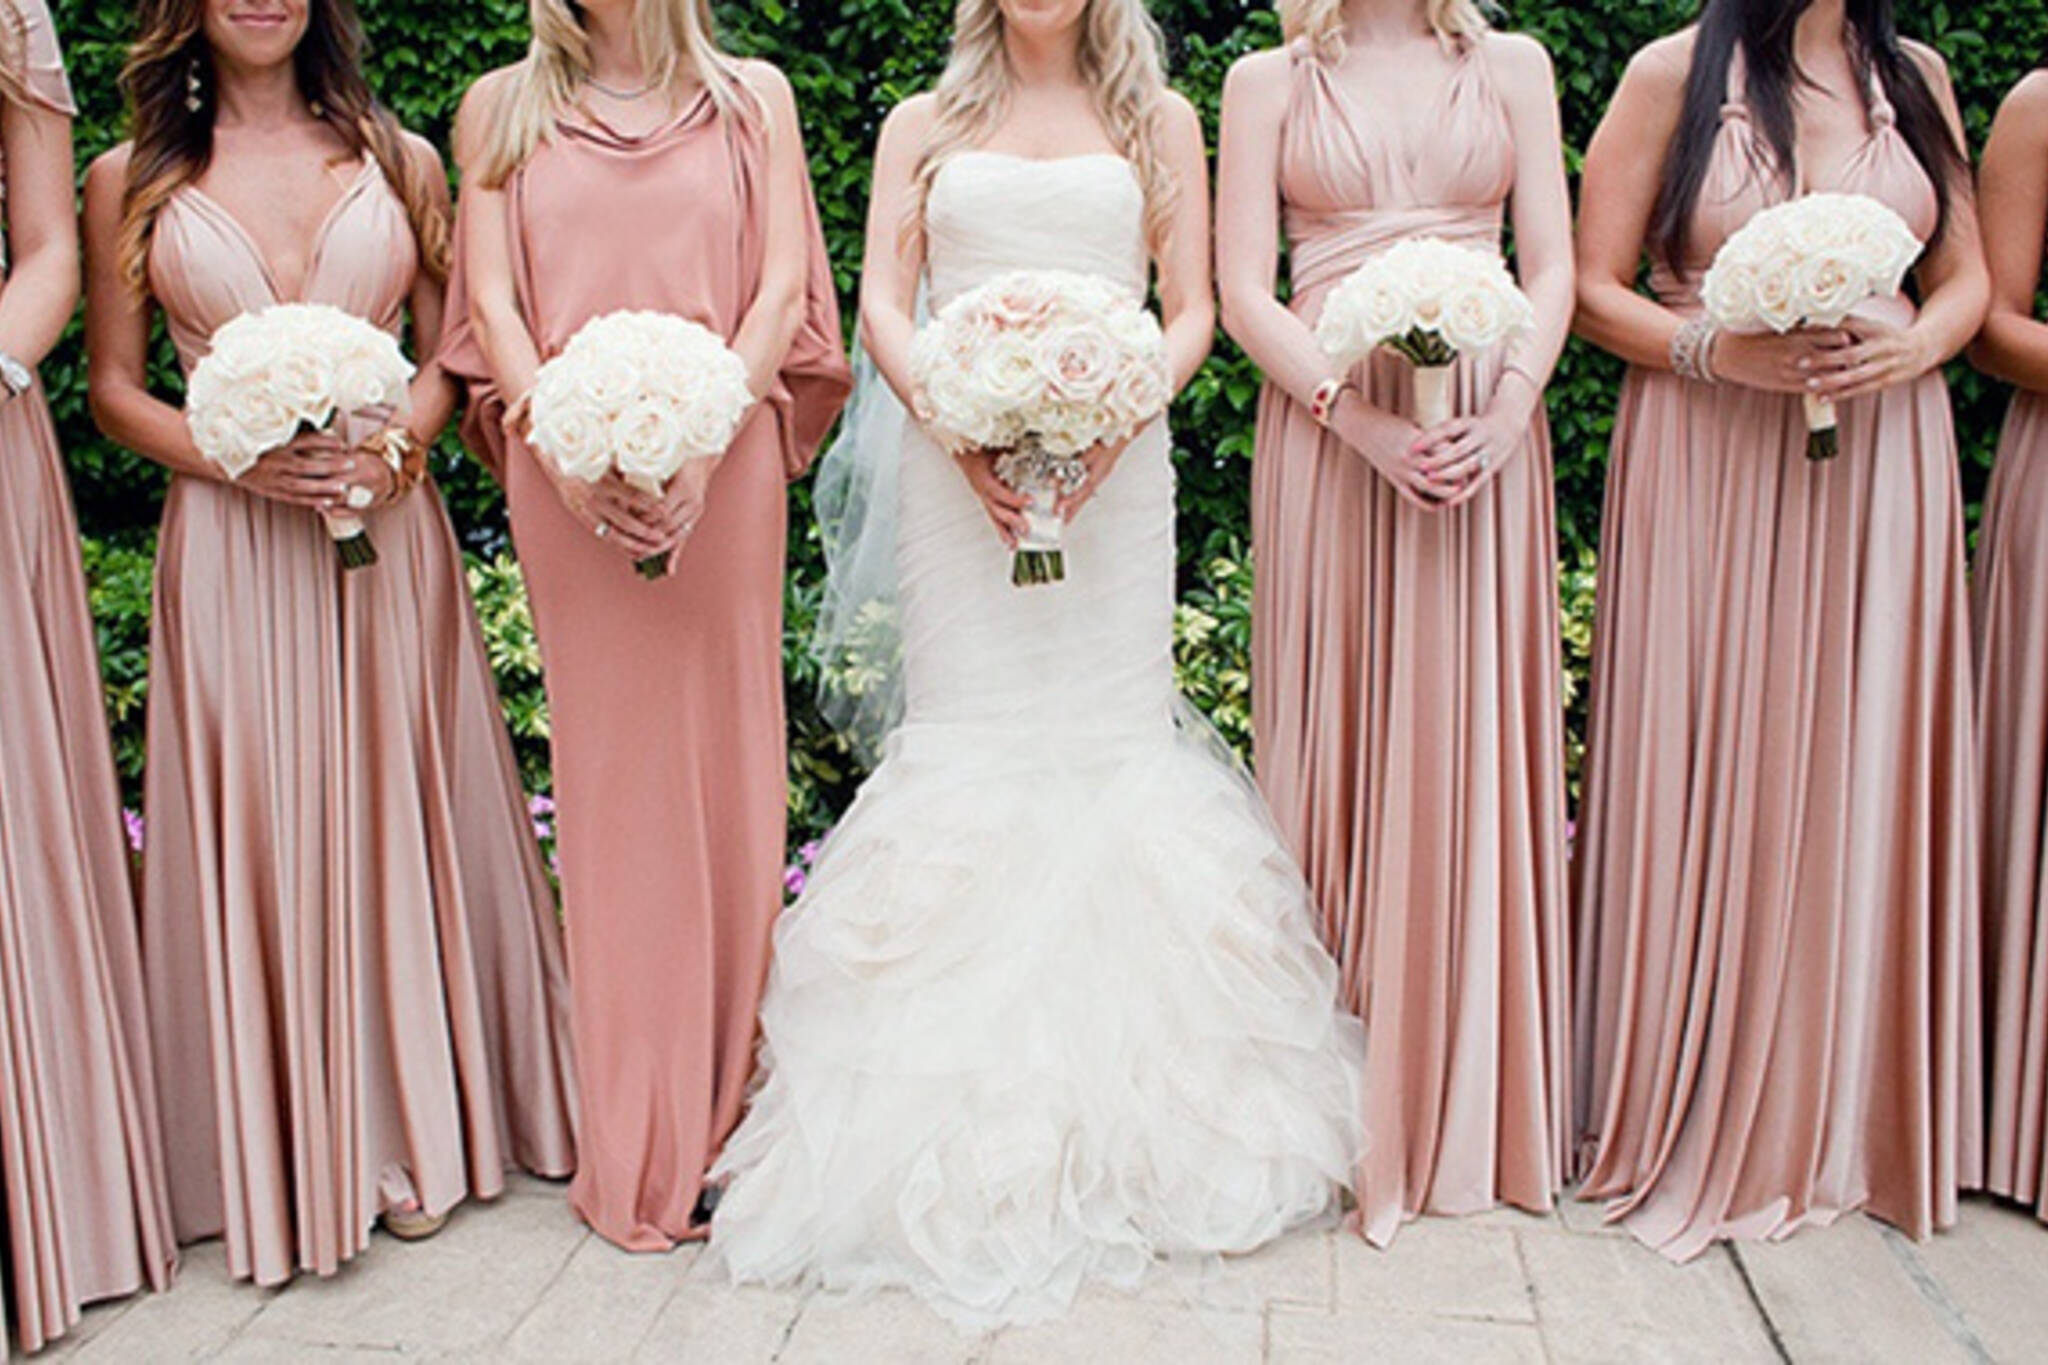 The best bridesmaid dresses in toronto bridesmaid dresses toronto ombrellifo Gallery